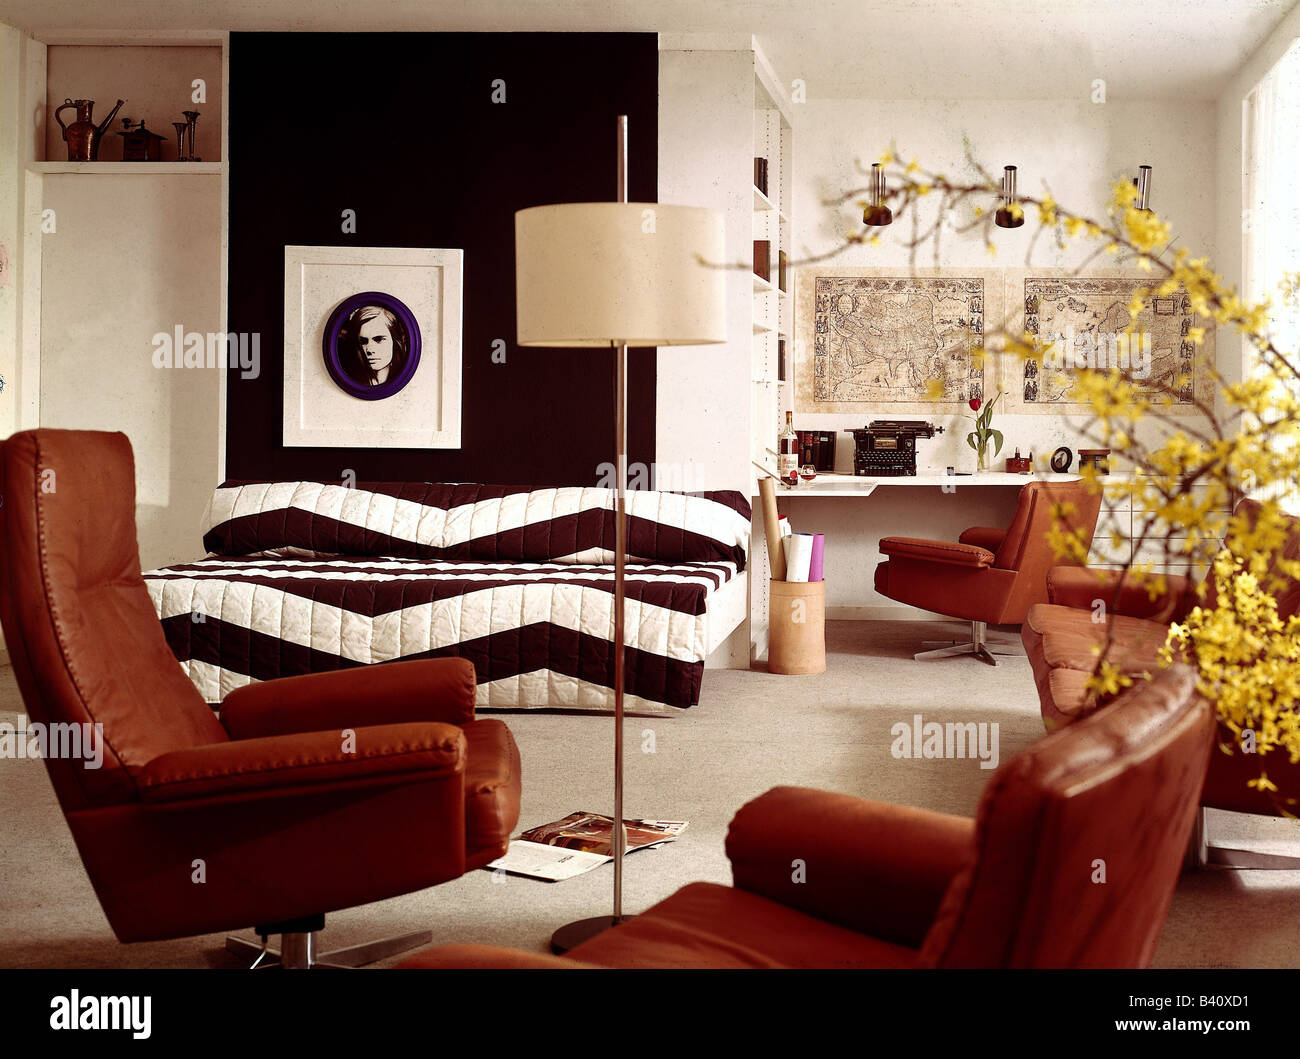 Incroyable Furnishing, Workroom, 1970s, 70s, Historic, Historical, Furniture,  Decoration, Couch, Armchair, Leather,